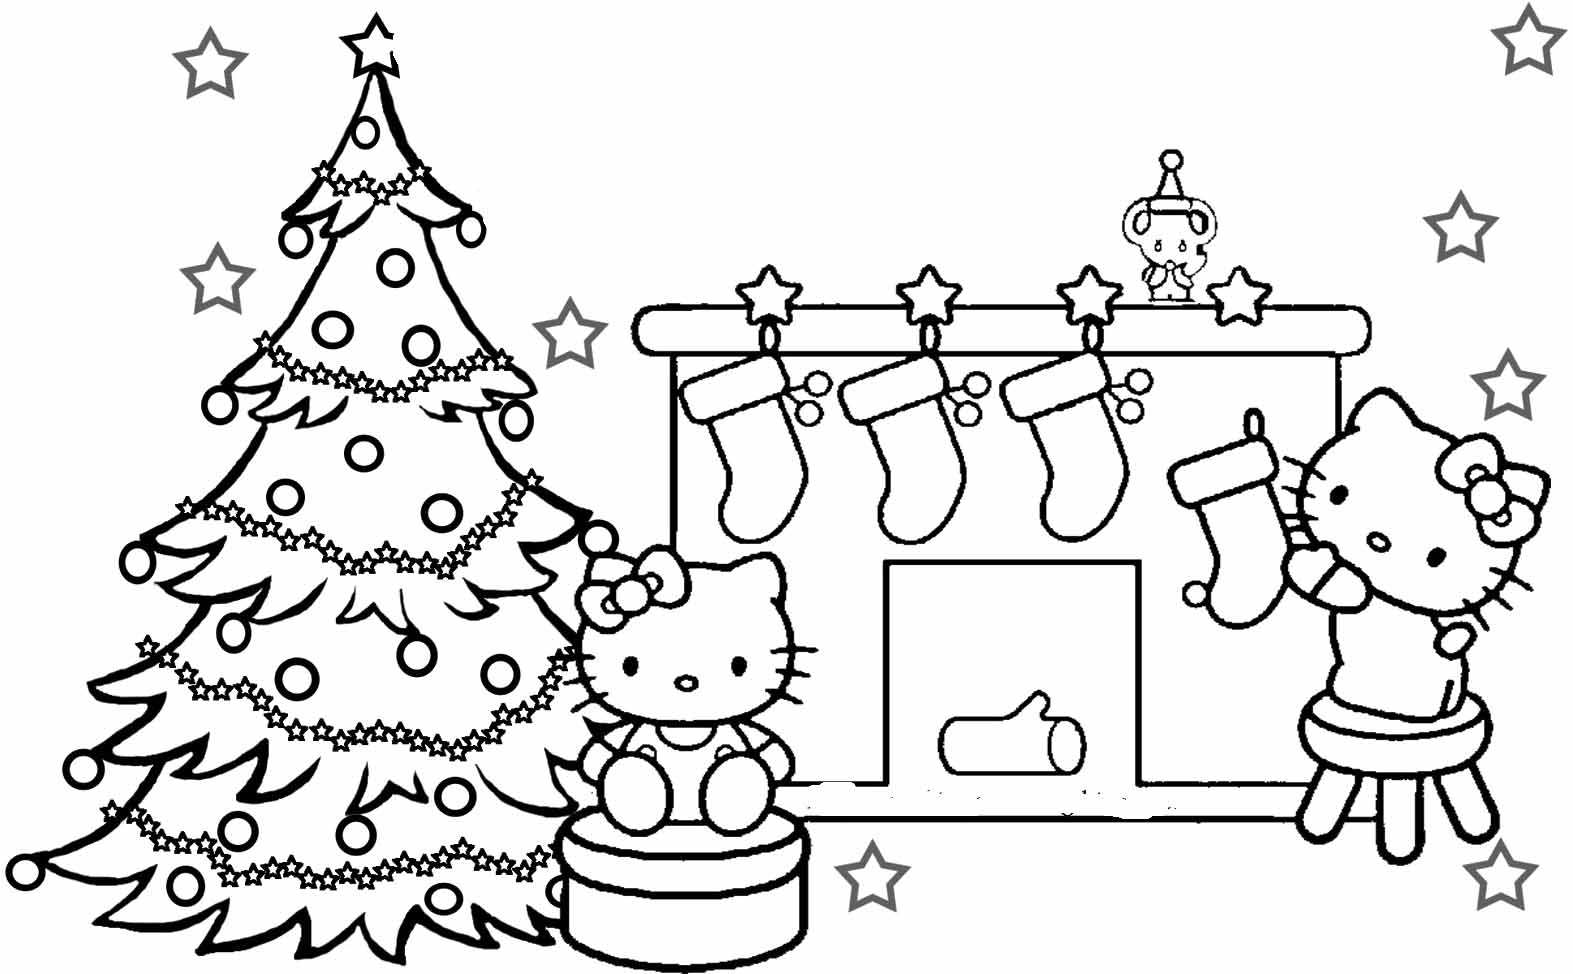 Kitty Christmas Printable Coloring Pages to Print Of Proven Coloring Pages to Print Hello Kitty 2895 Unknown Printable